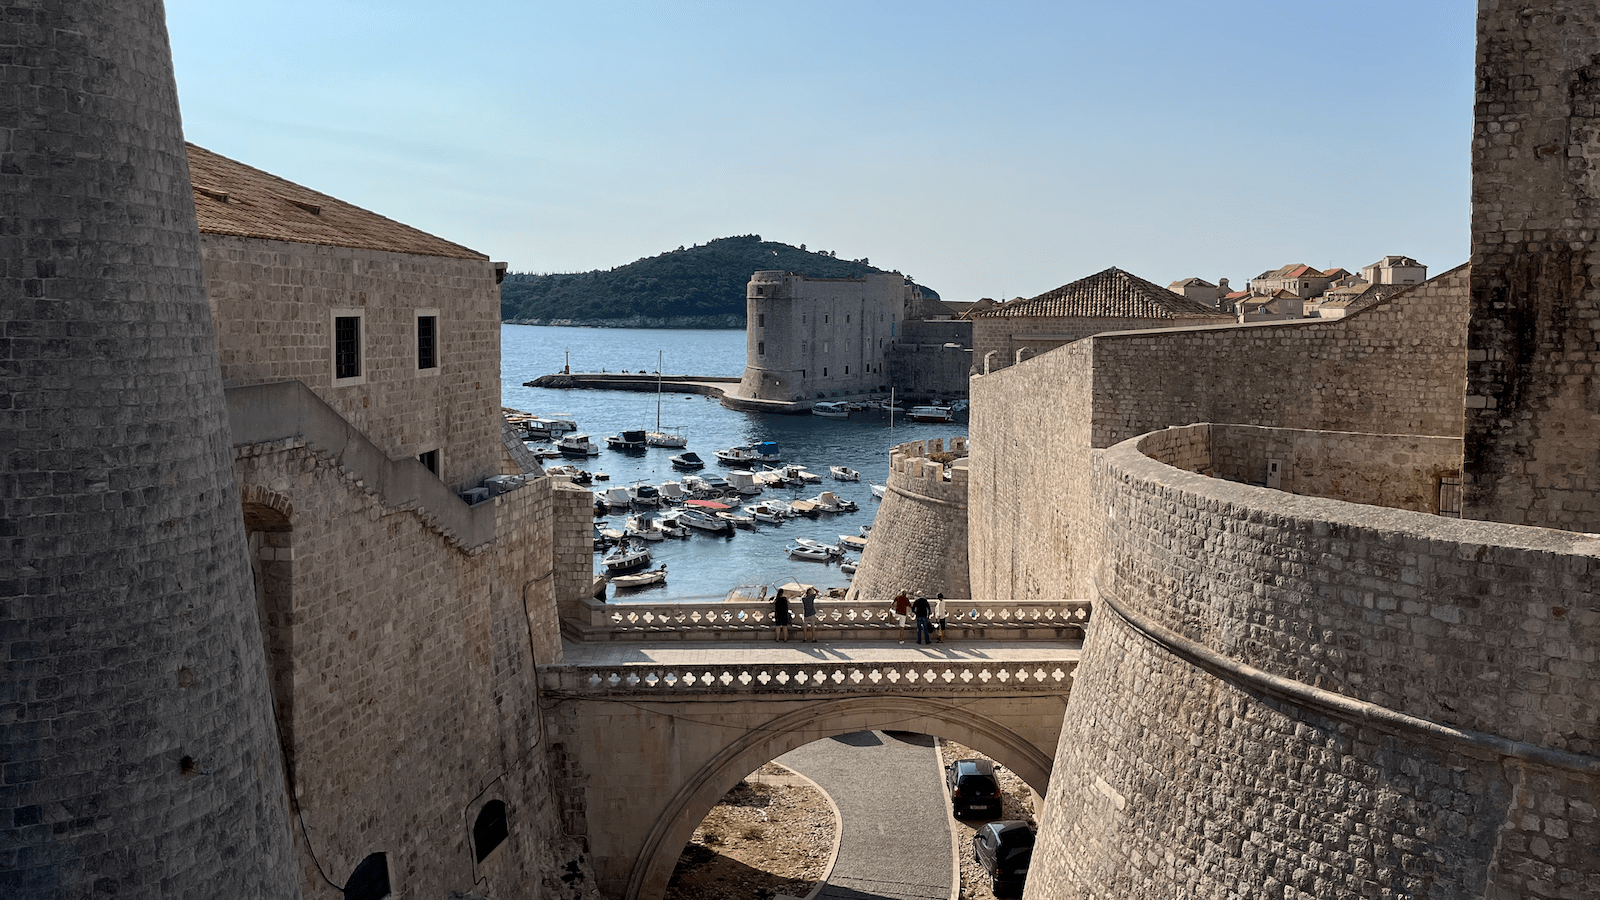 Attending MicroConf Europe '21 in Dubrovnik featured image